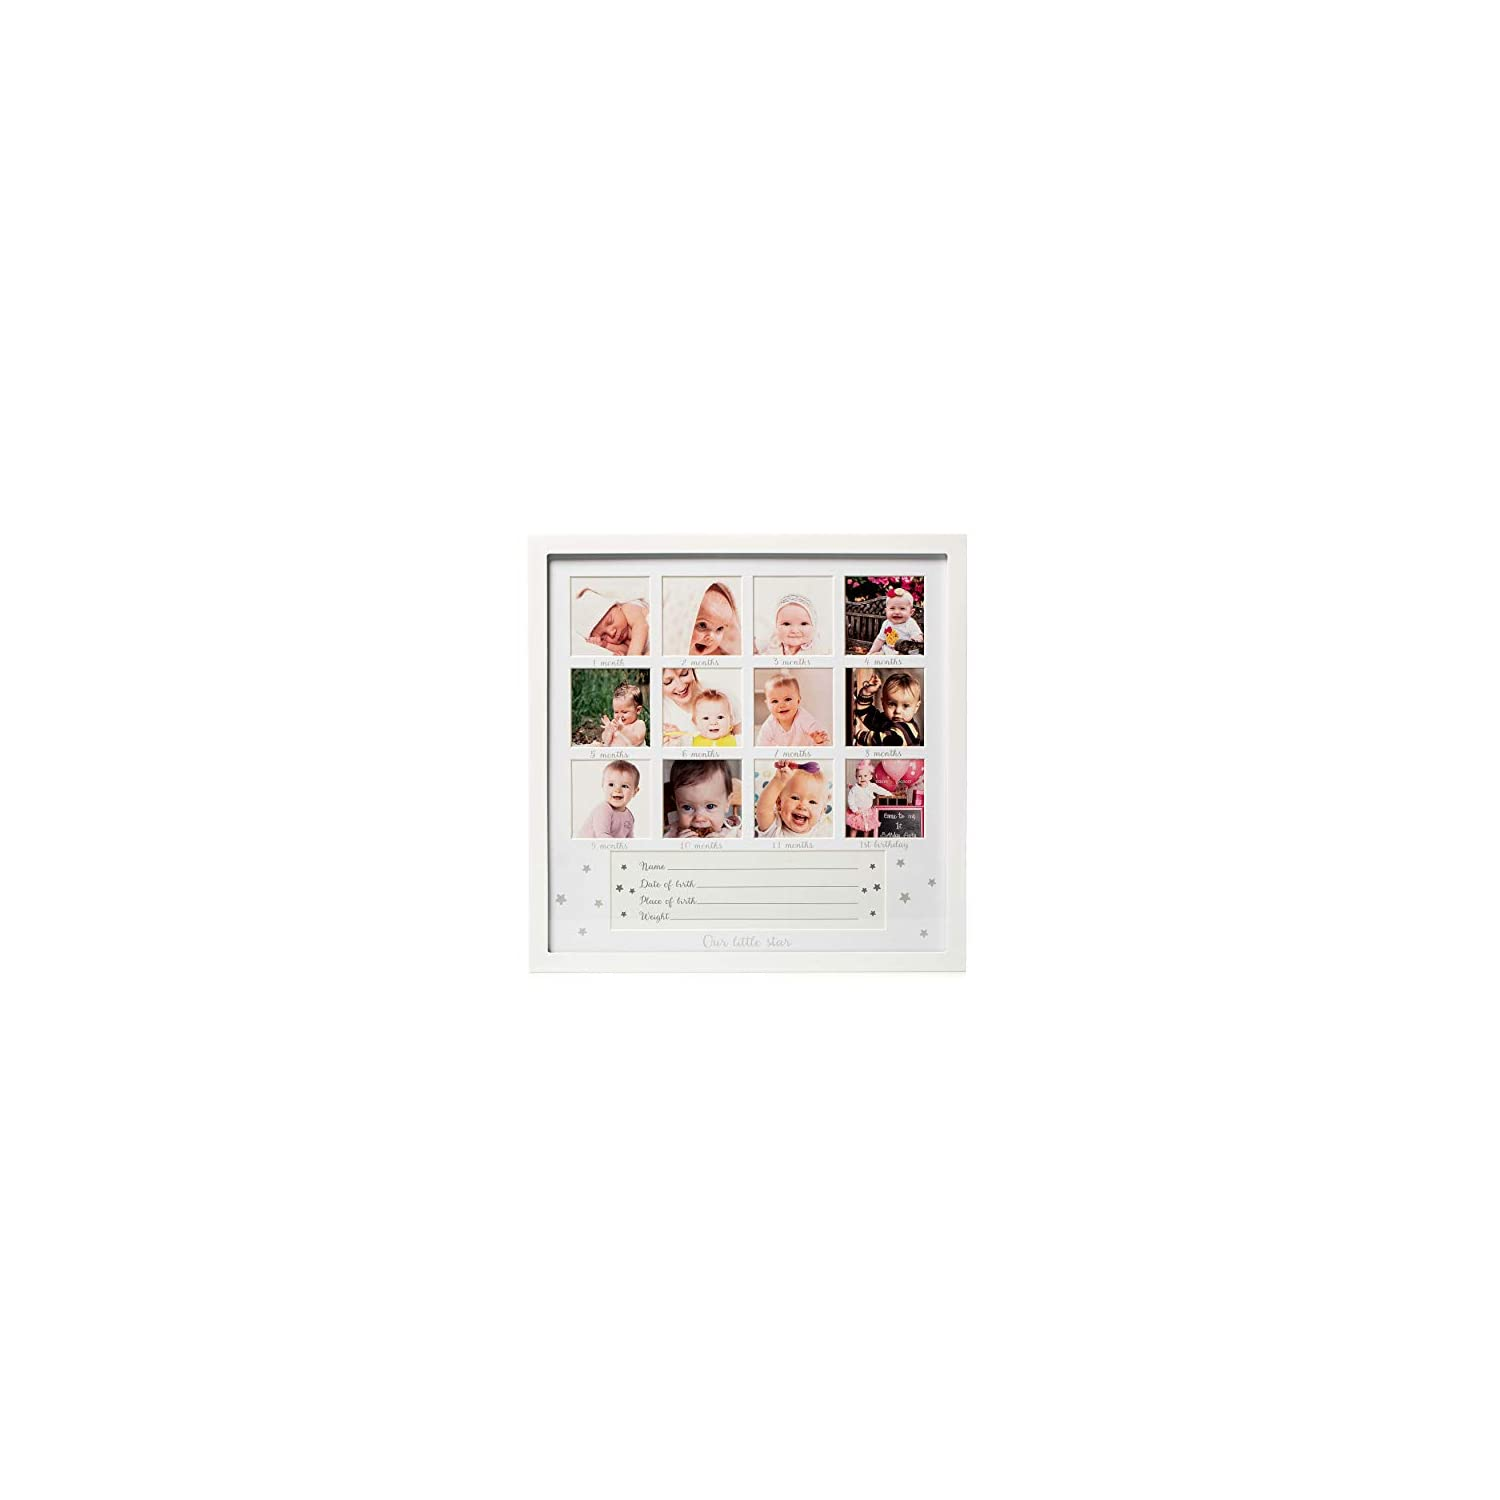 1Dino My First Year Baby Keepsake Picture Frame – 13.2″x 13.2″ White Wood Baby Frame Hold 12 Months Photo Inserts – Newborn Baby Registry, Shower Gift for Boys and Girls, Wall or Desk Nursery Decor